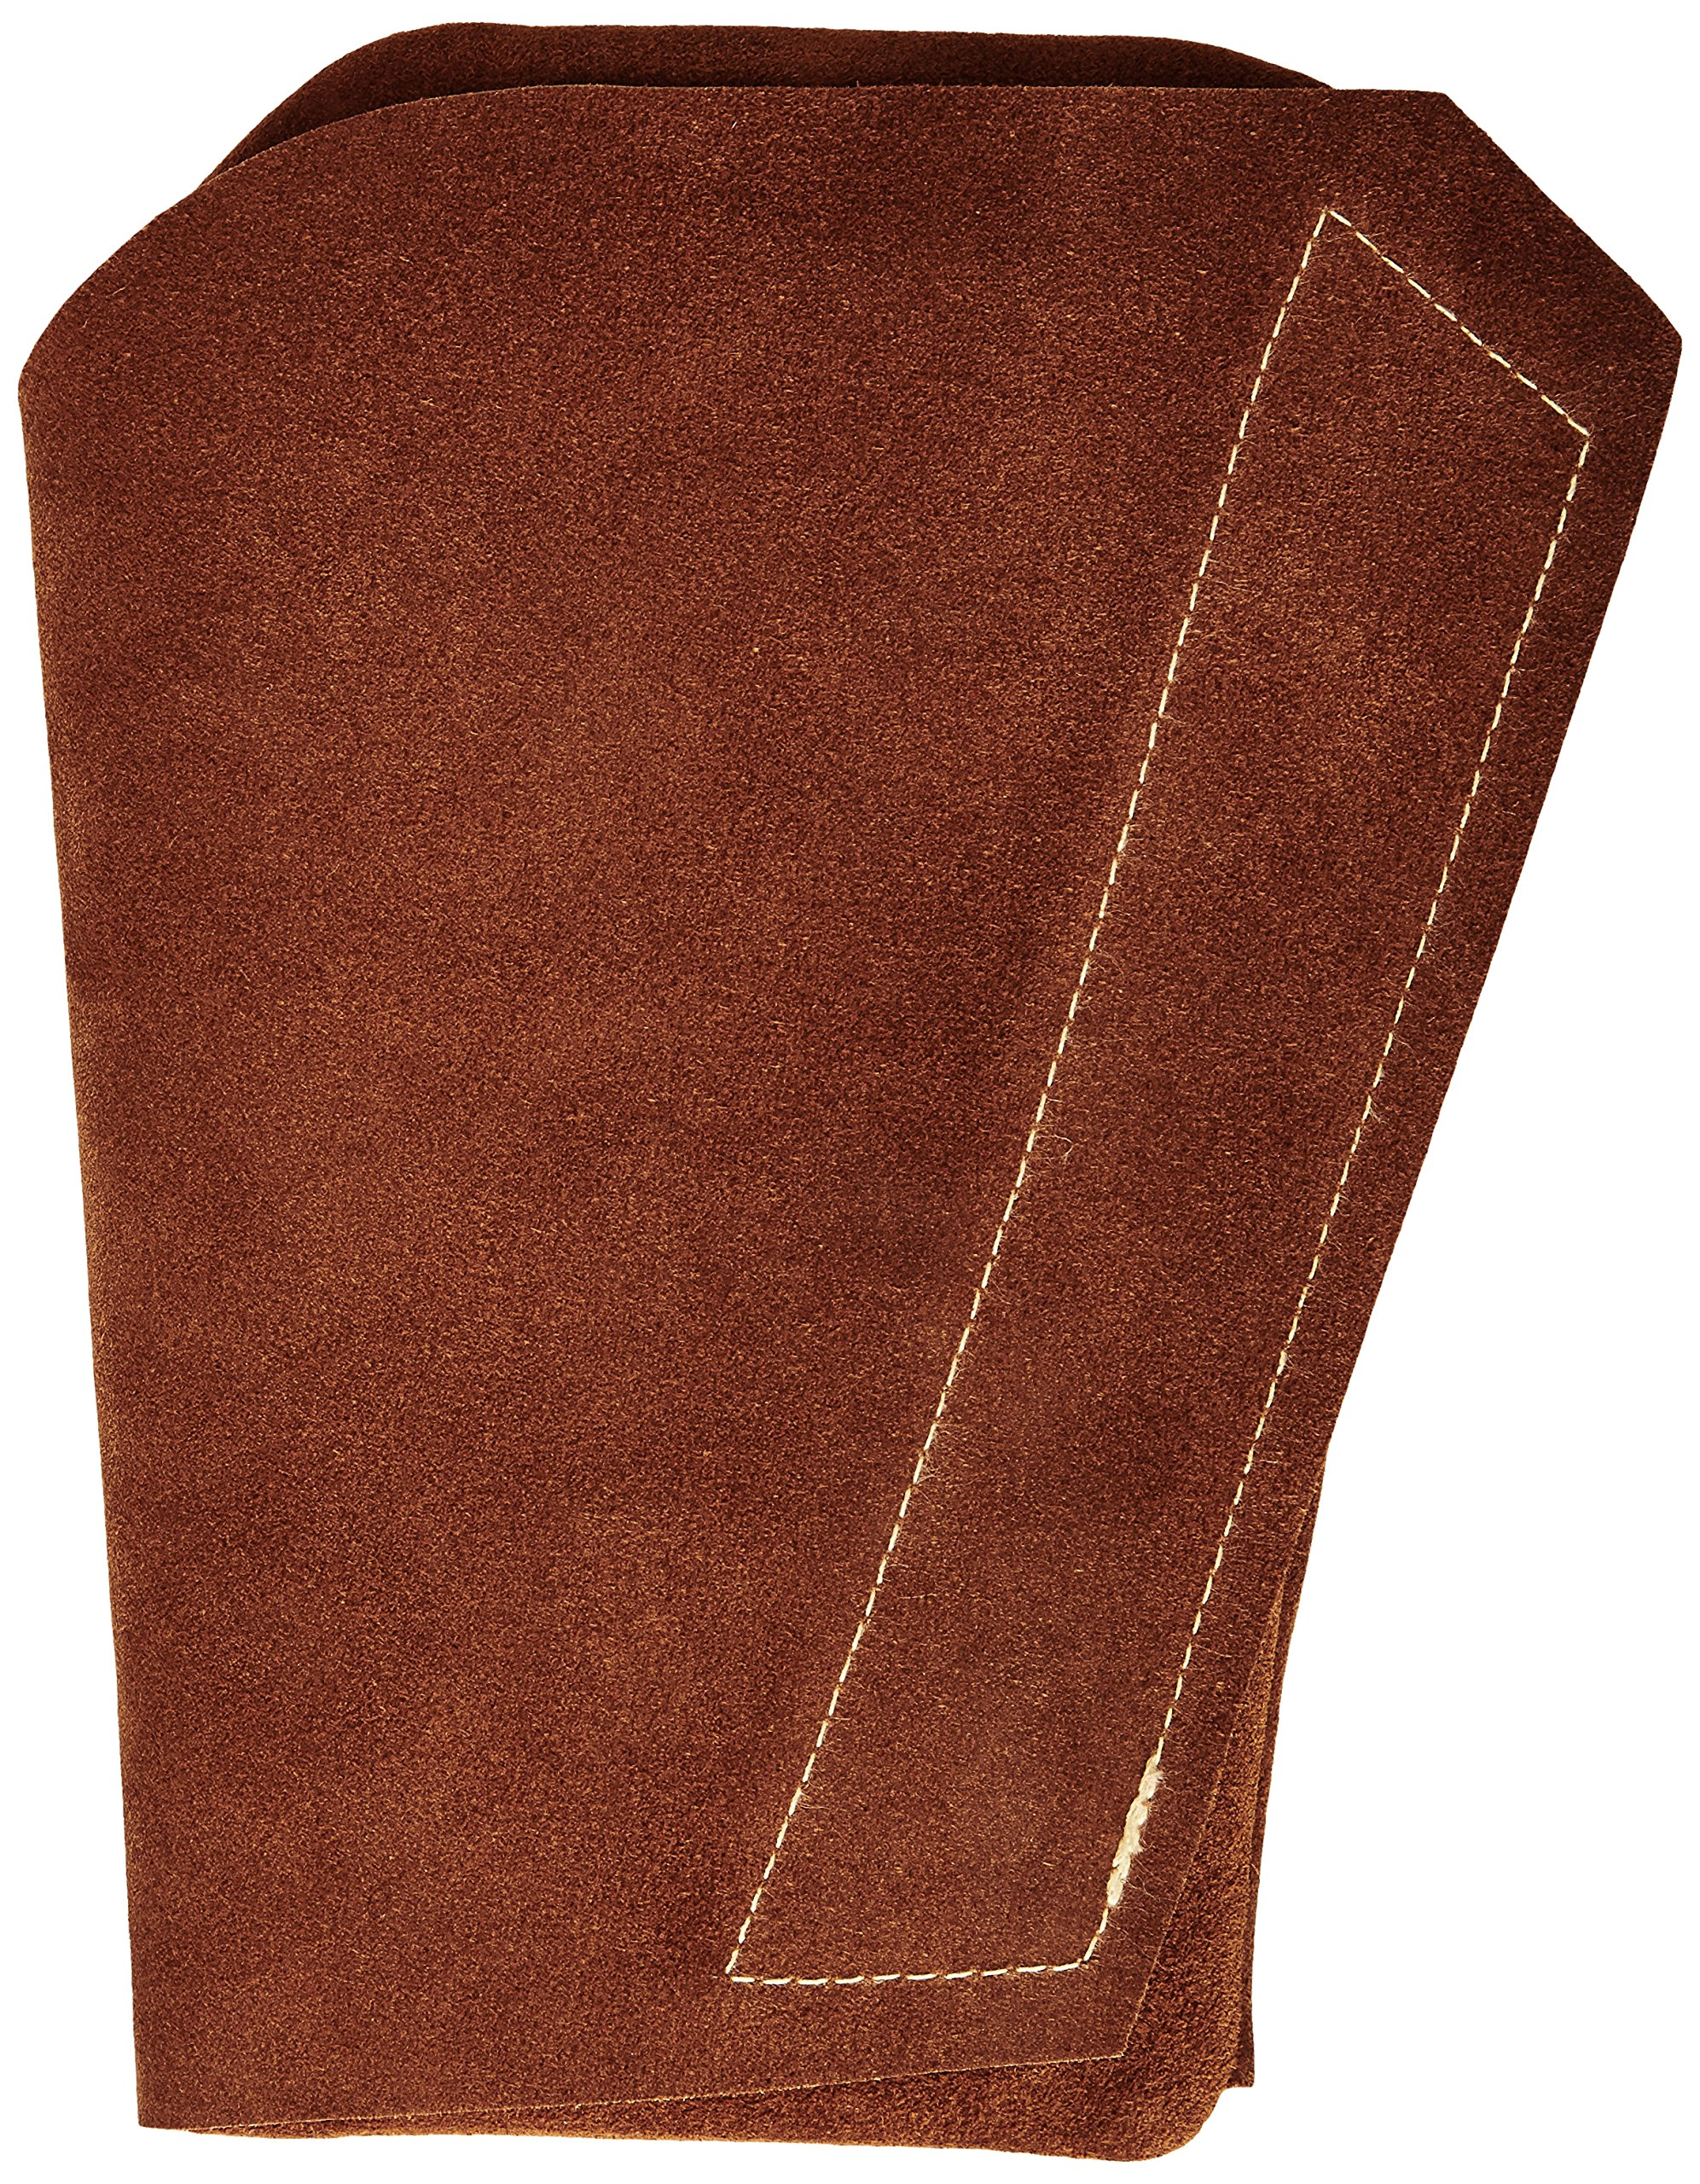 Lapco FR LAP-AL Leather Arm Pad, Left Arm, One Size, Tan by Lapco FR (Image #1)